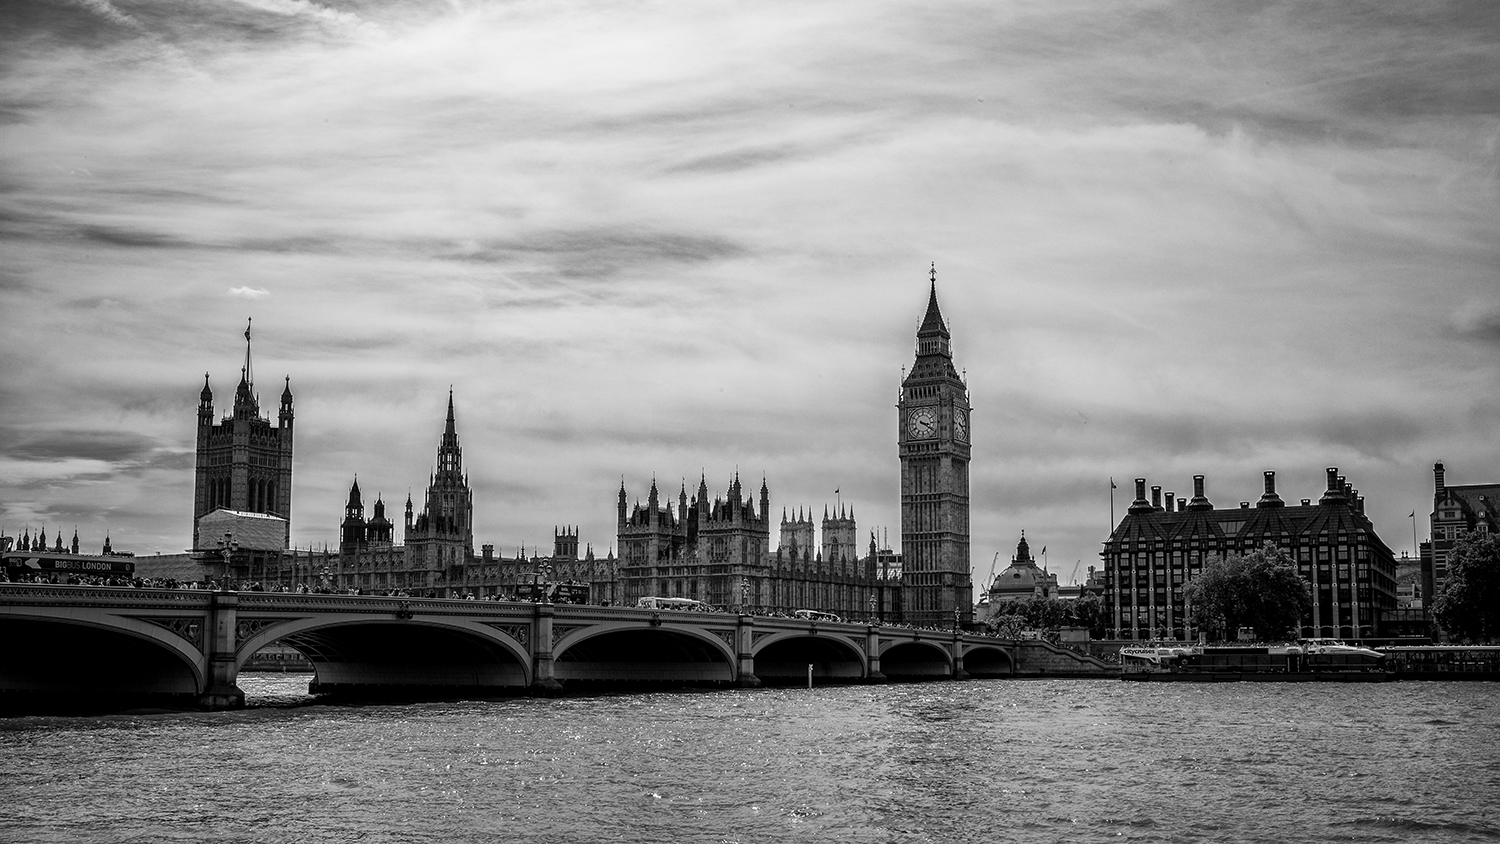 Big Ben and Parliament as seen from across the river. Black and White conversion done in Nik Silver Effects 2 (shot in RAW).